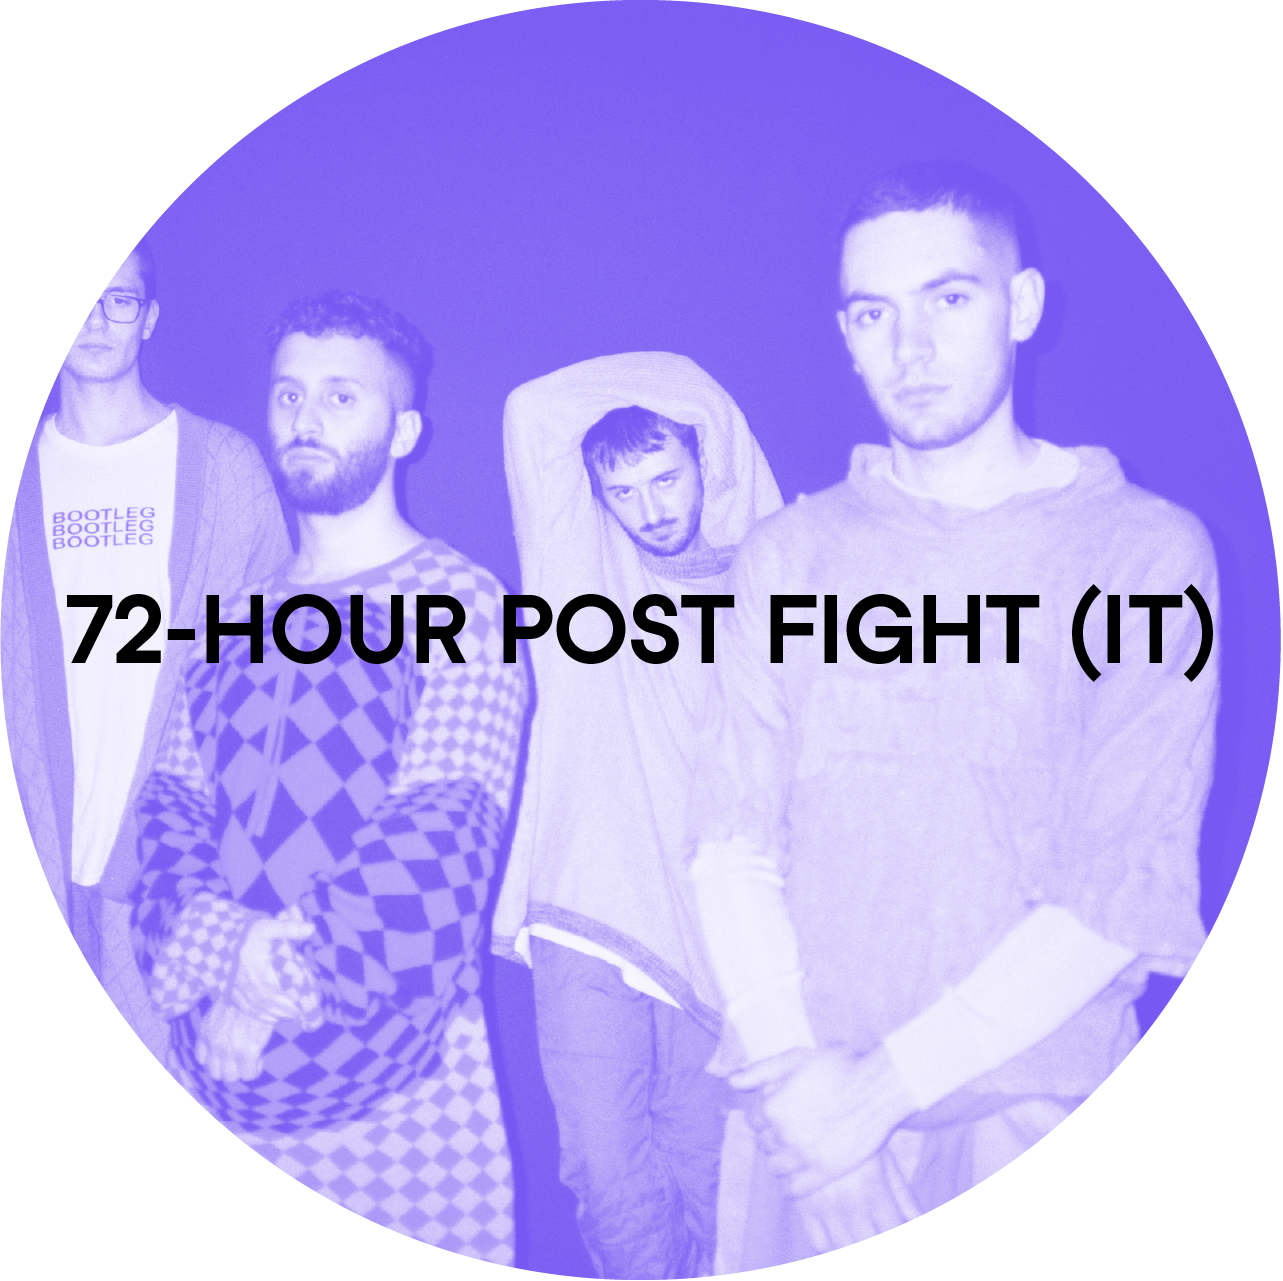 72-HOUR POST FIGHT (Italy)